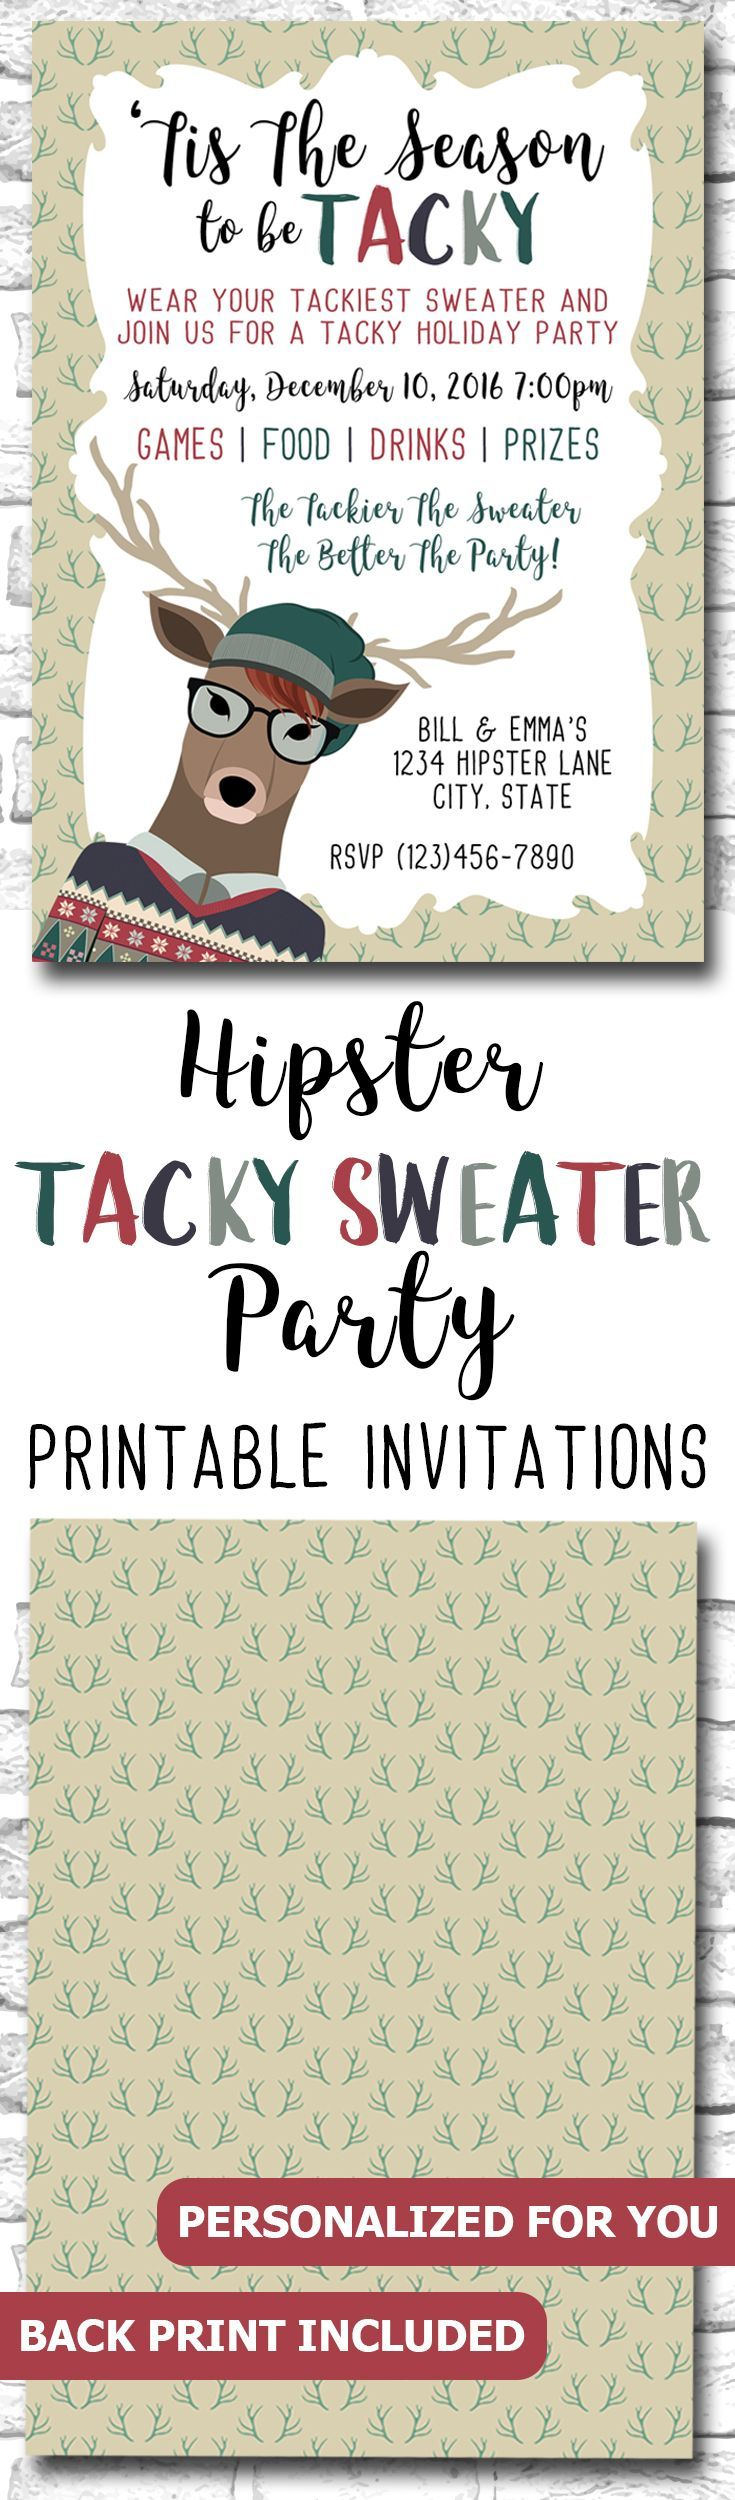 Hipster Tacky Christmas Sweater Party Invitation For Geeks, Nerds And Hipsters, 'Tis The Season To Be Tacky Invite https://www.etsy.com/ca/listing/475187388/hipster-tacky-christmas-sweater-party